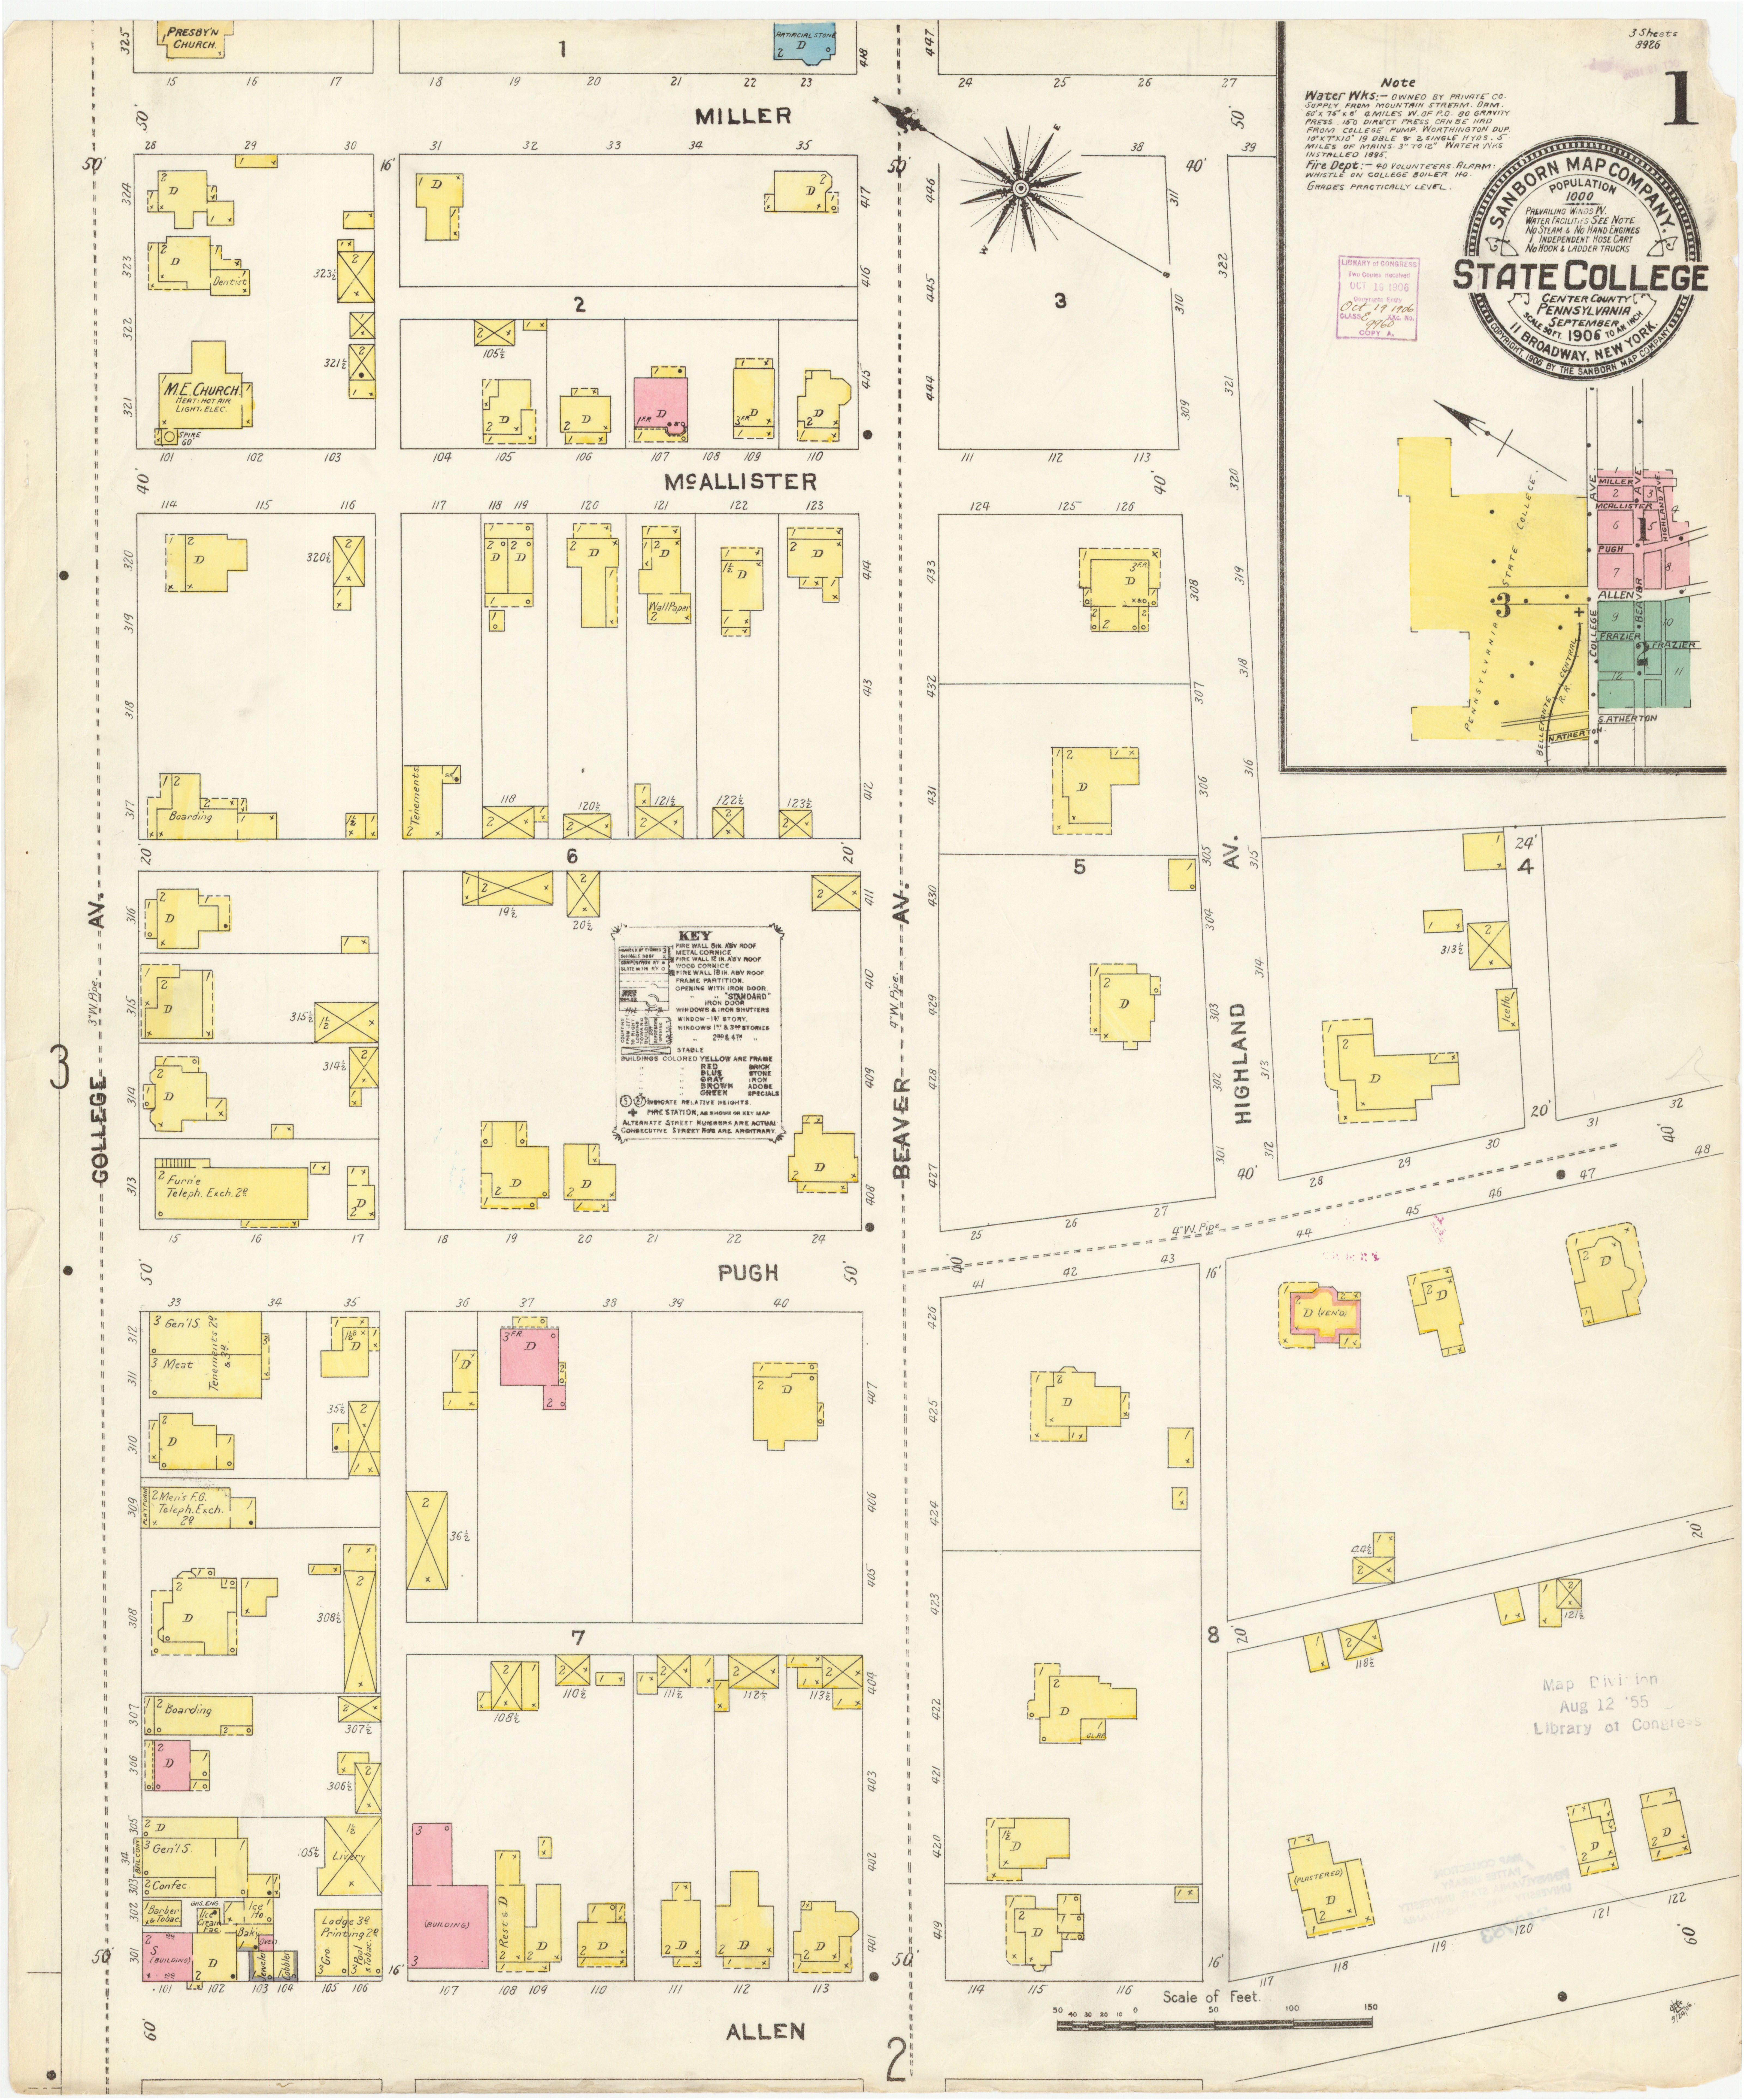 Sanborn Fire Map.Sanborn Fire Insurance Maps Much More Than Meets The Eye